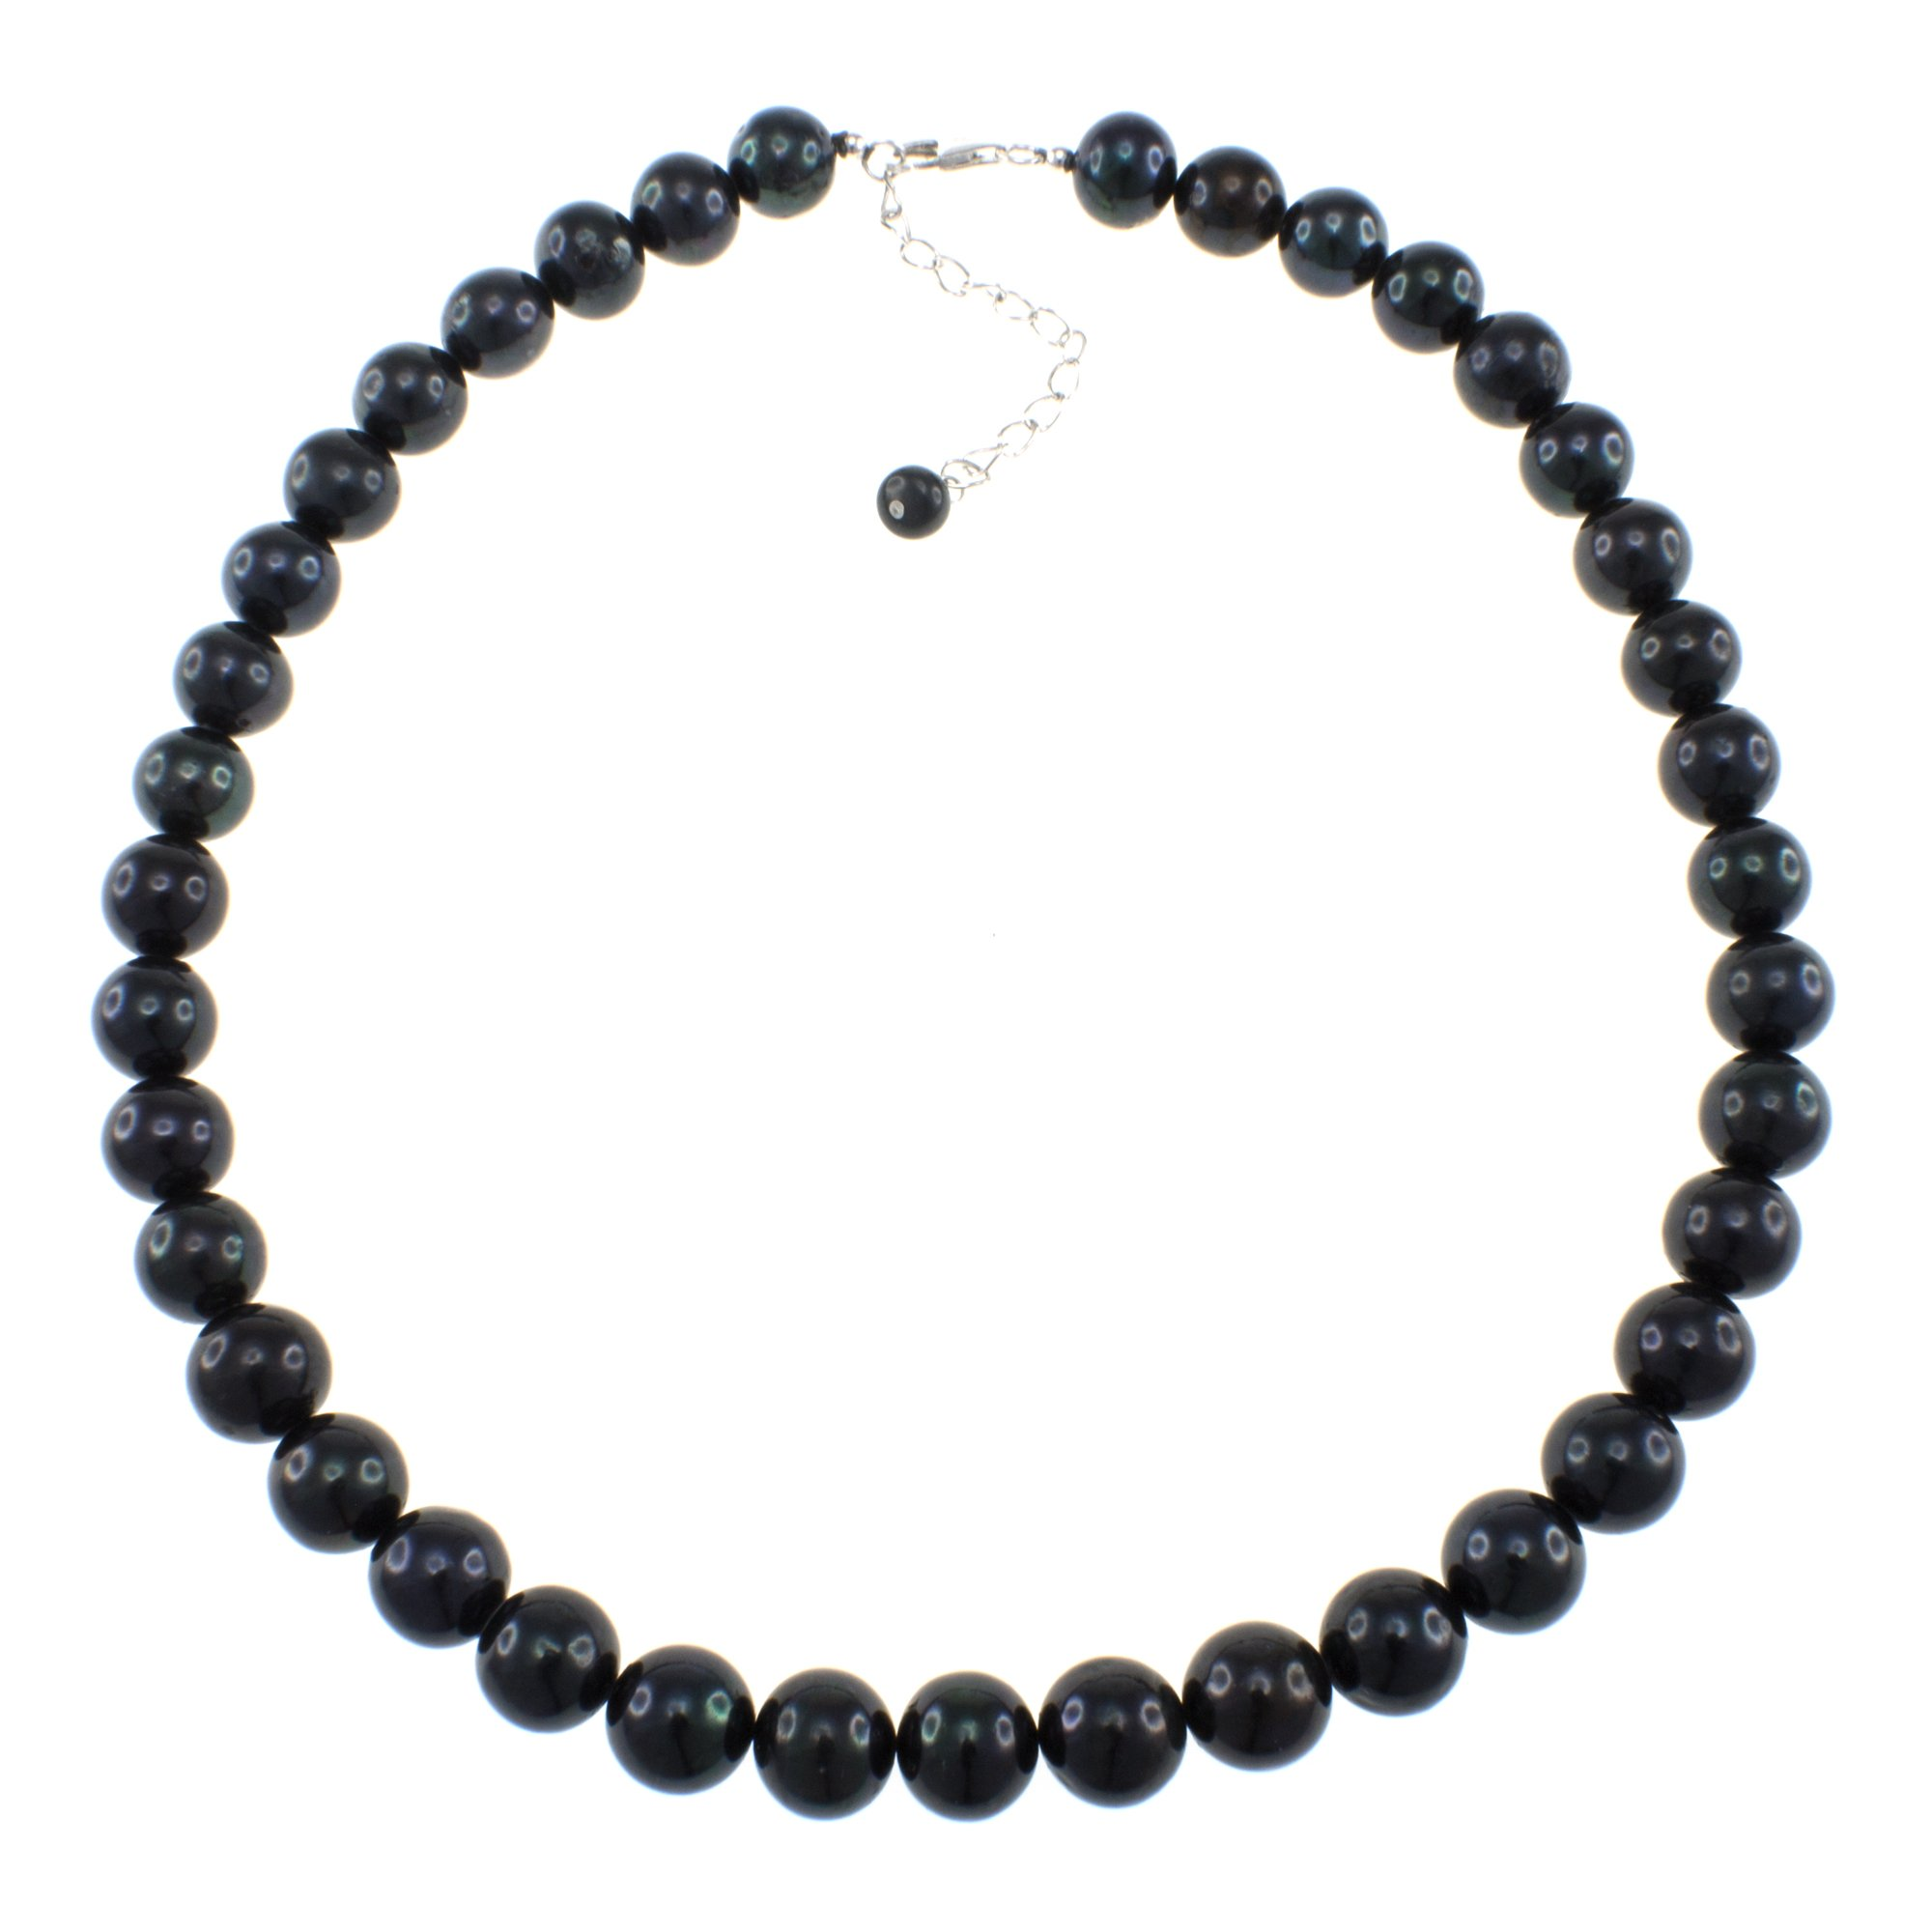 Natural Black Freshwater Cultured Pearl Strand Handmade Necklace for Women